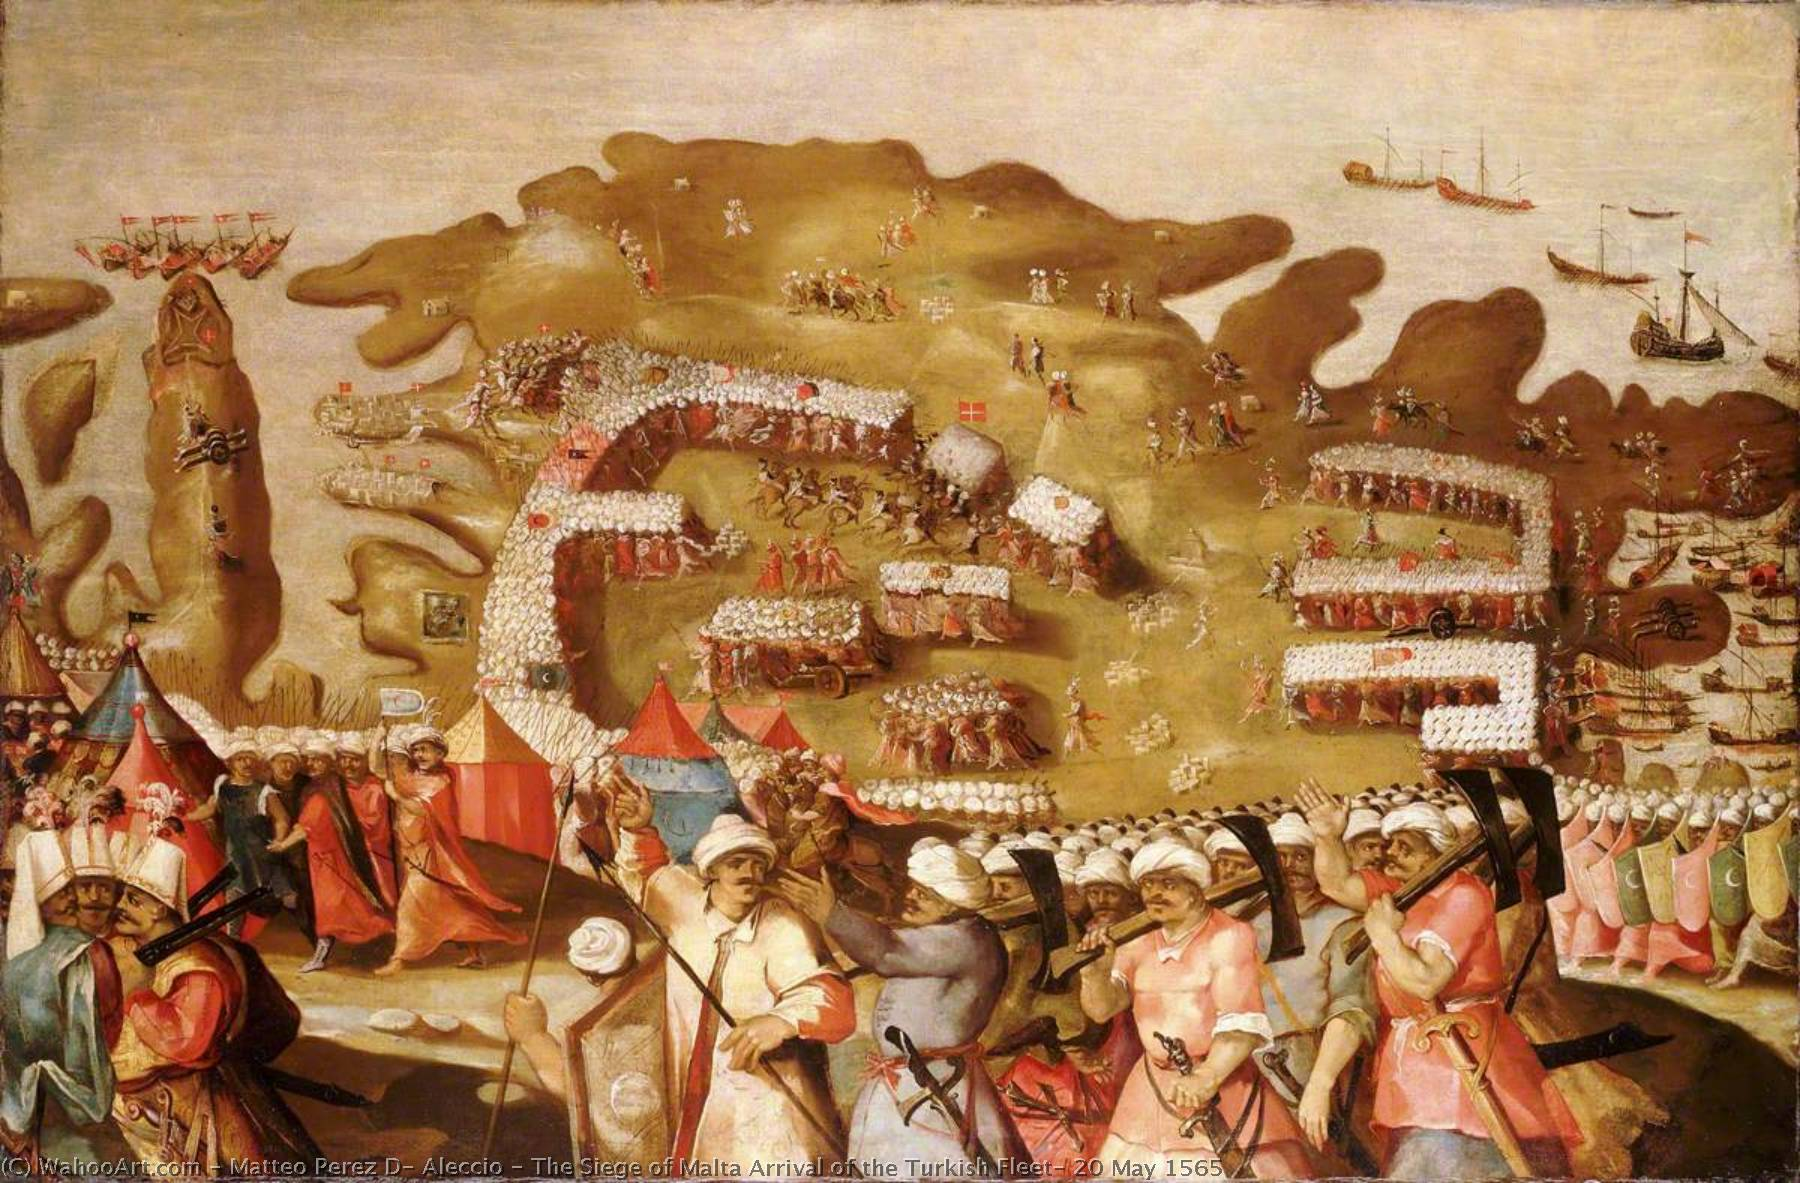 The Siege of Malta Arrival of the Turkish Fleet, 20 May 1565 by Matteo Perez D' Aleccio | Reproductions Matteo Perez D' Aleccio | ArtsDot.com